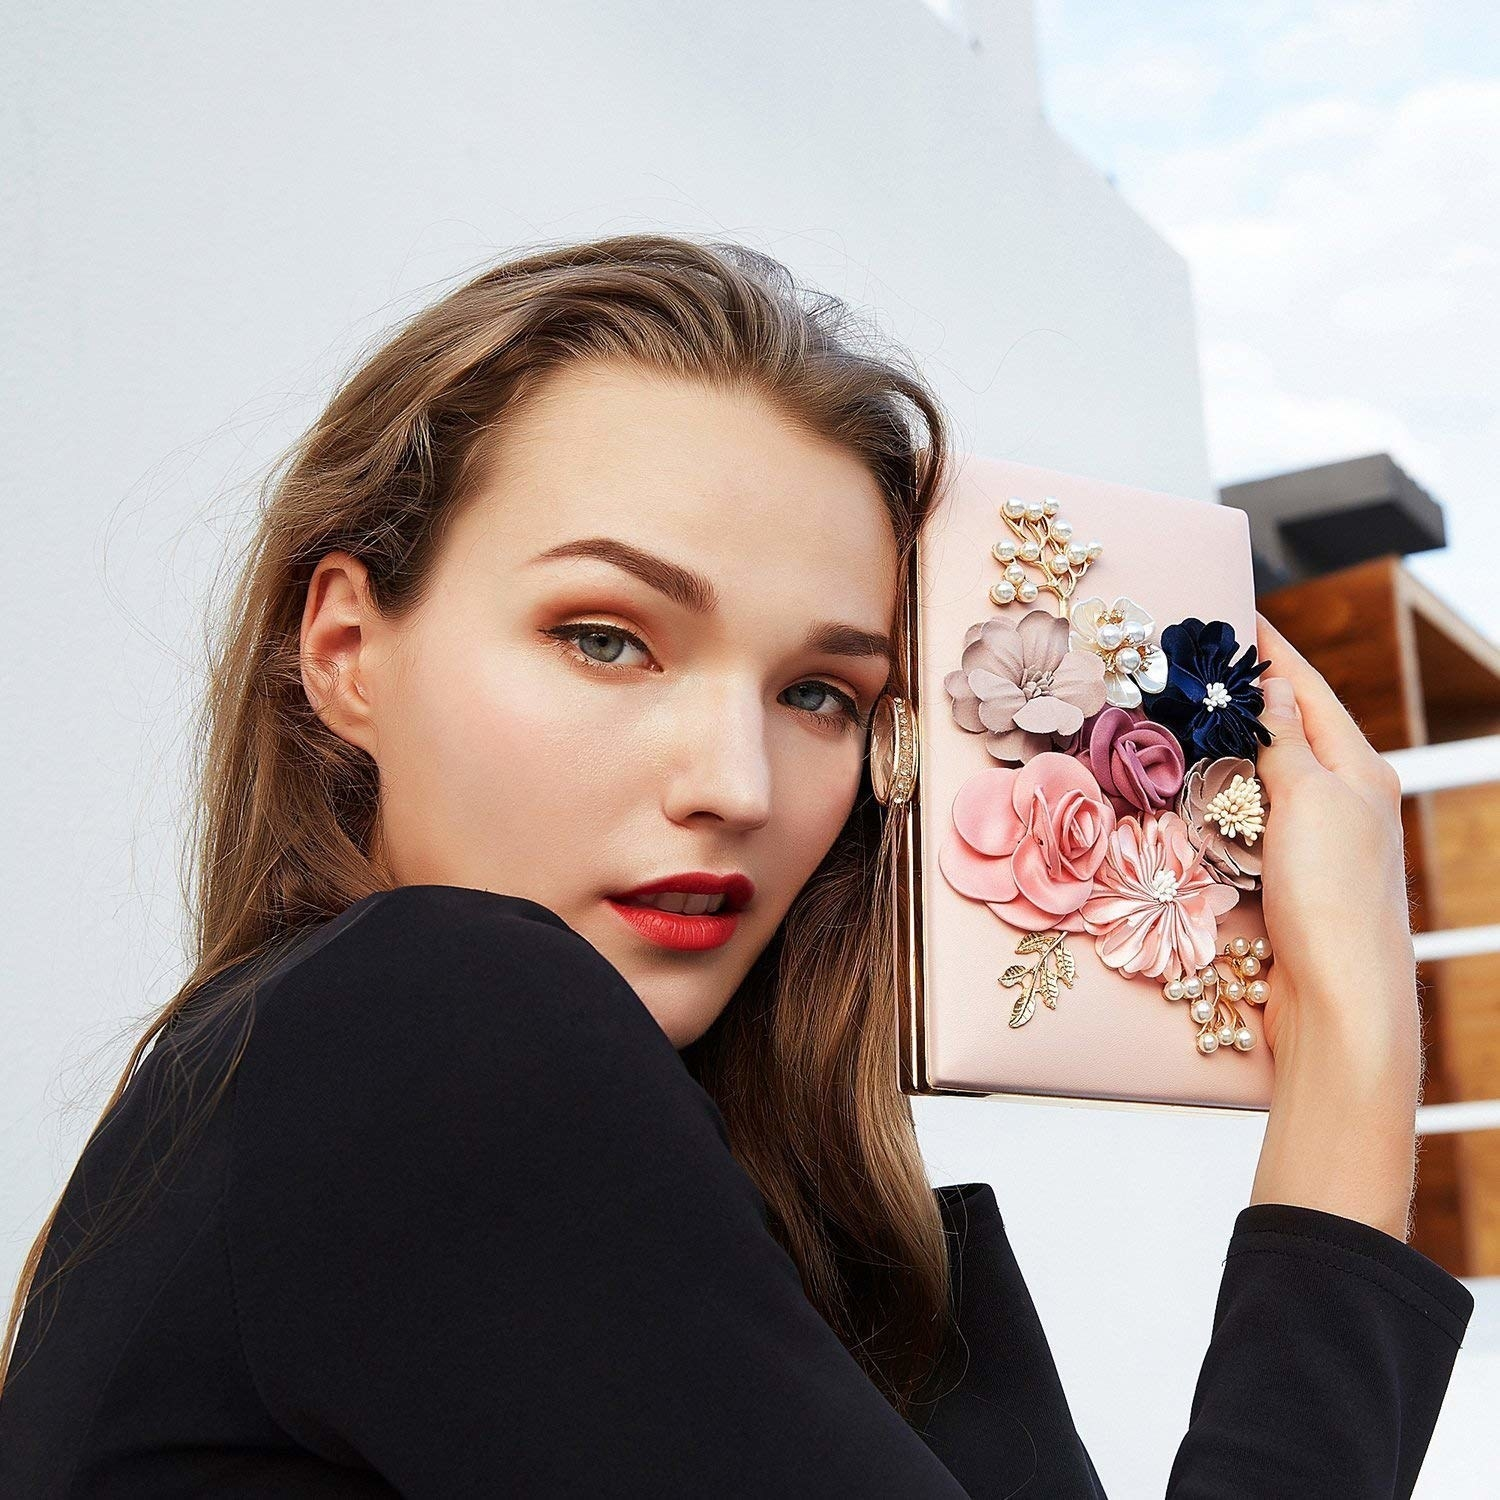 A woman holding a pink clutch bag with flowers on the front